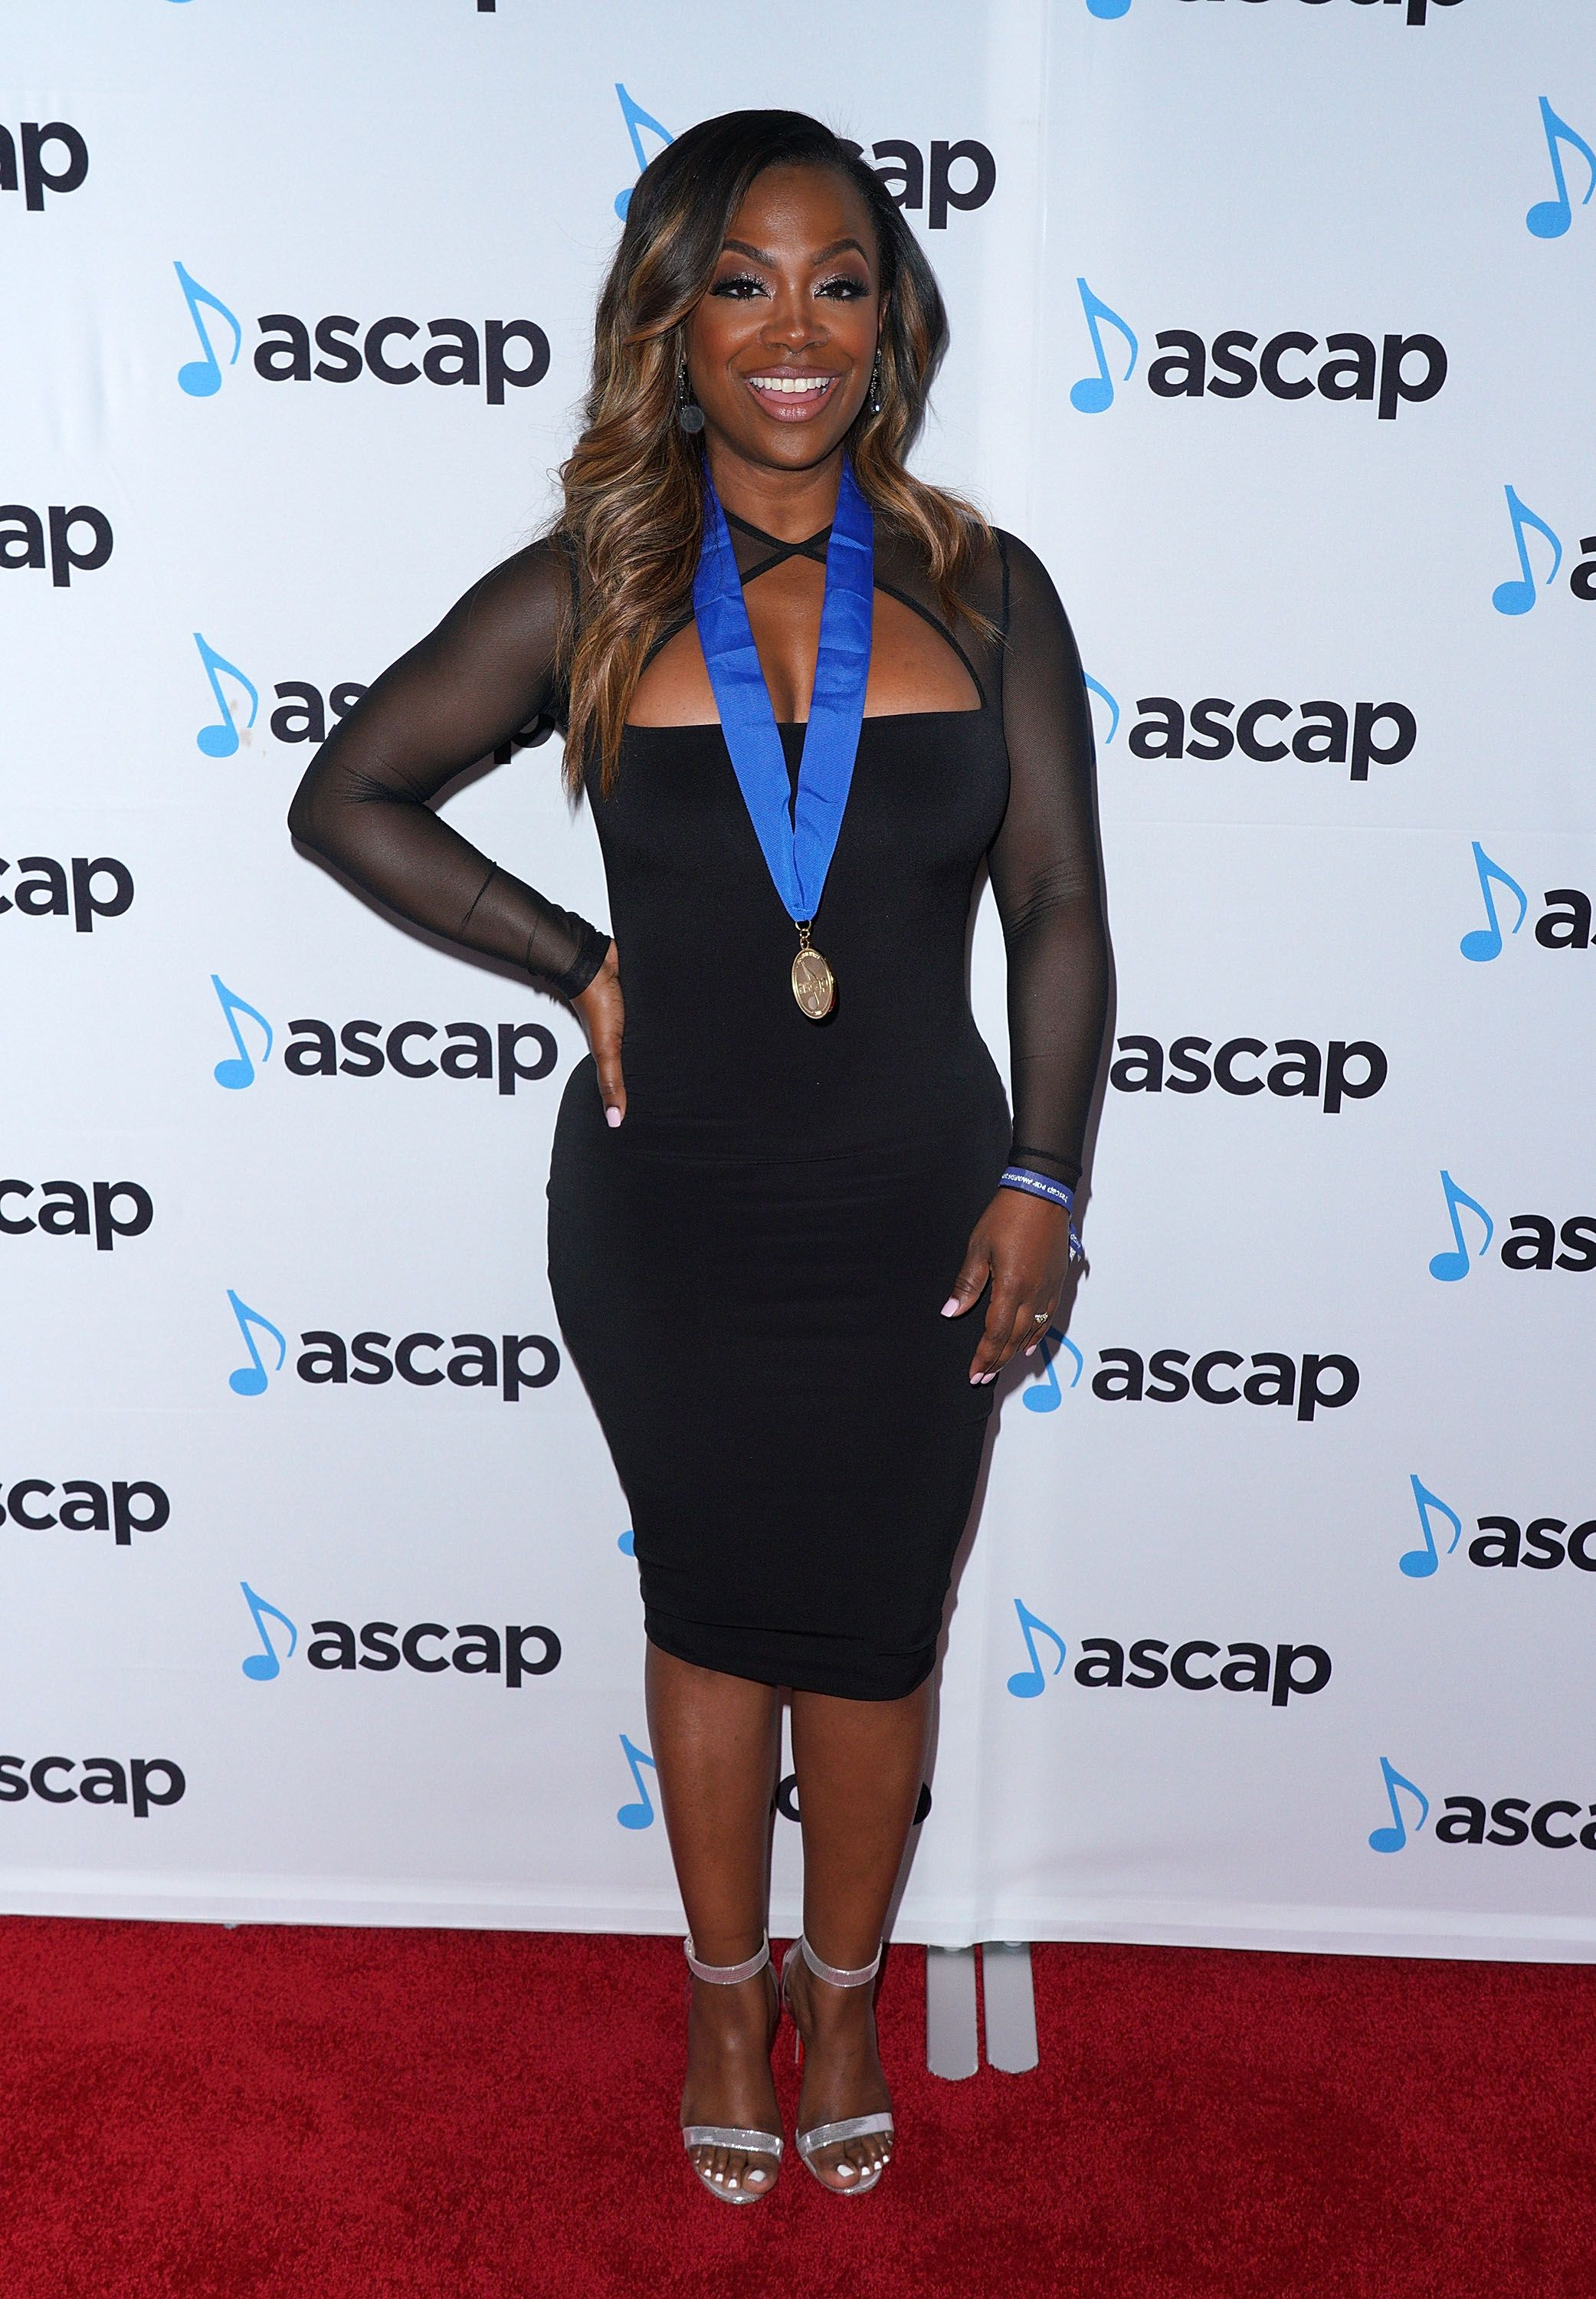 Kandi Burruss at the ASCAP Pop Music Awards on April 23, 2018 in Beverly Hills. | Photo: Getty Images